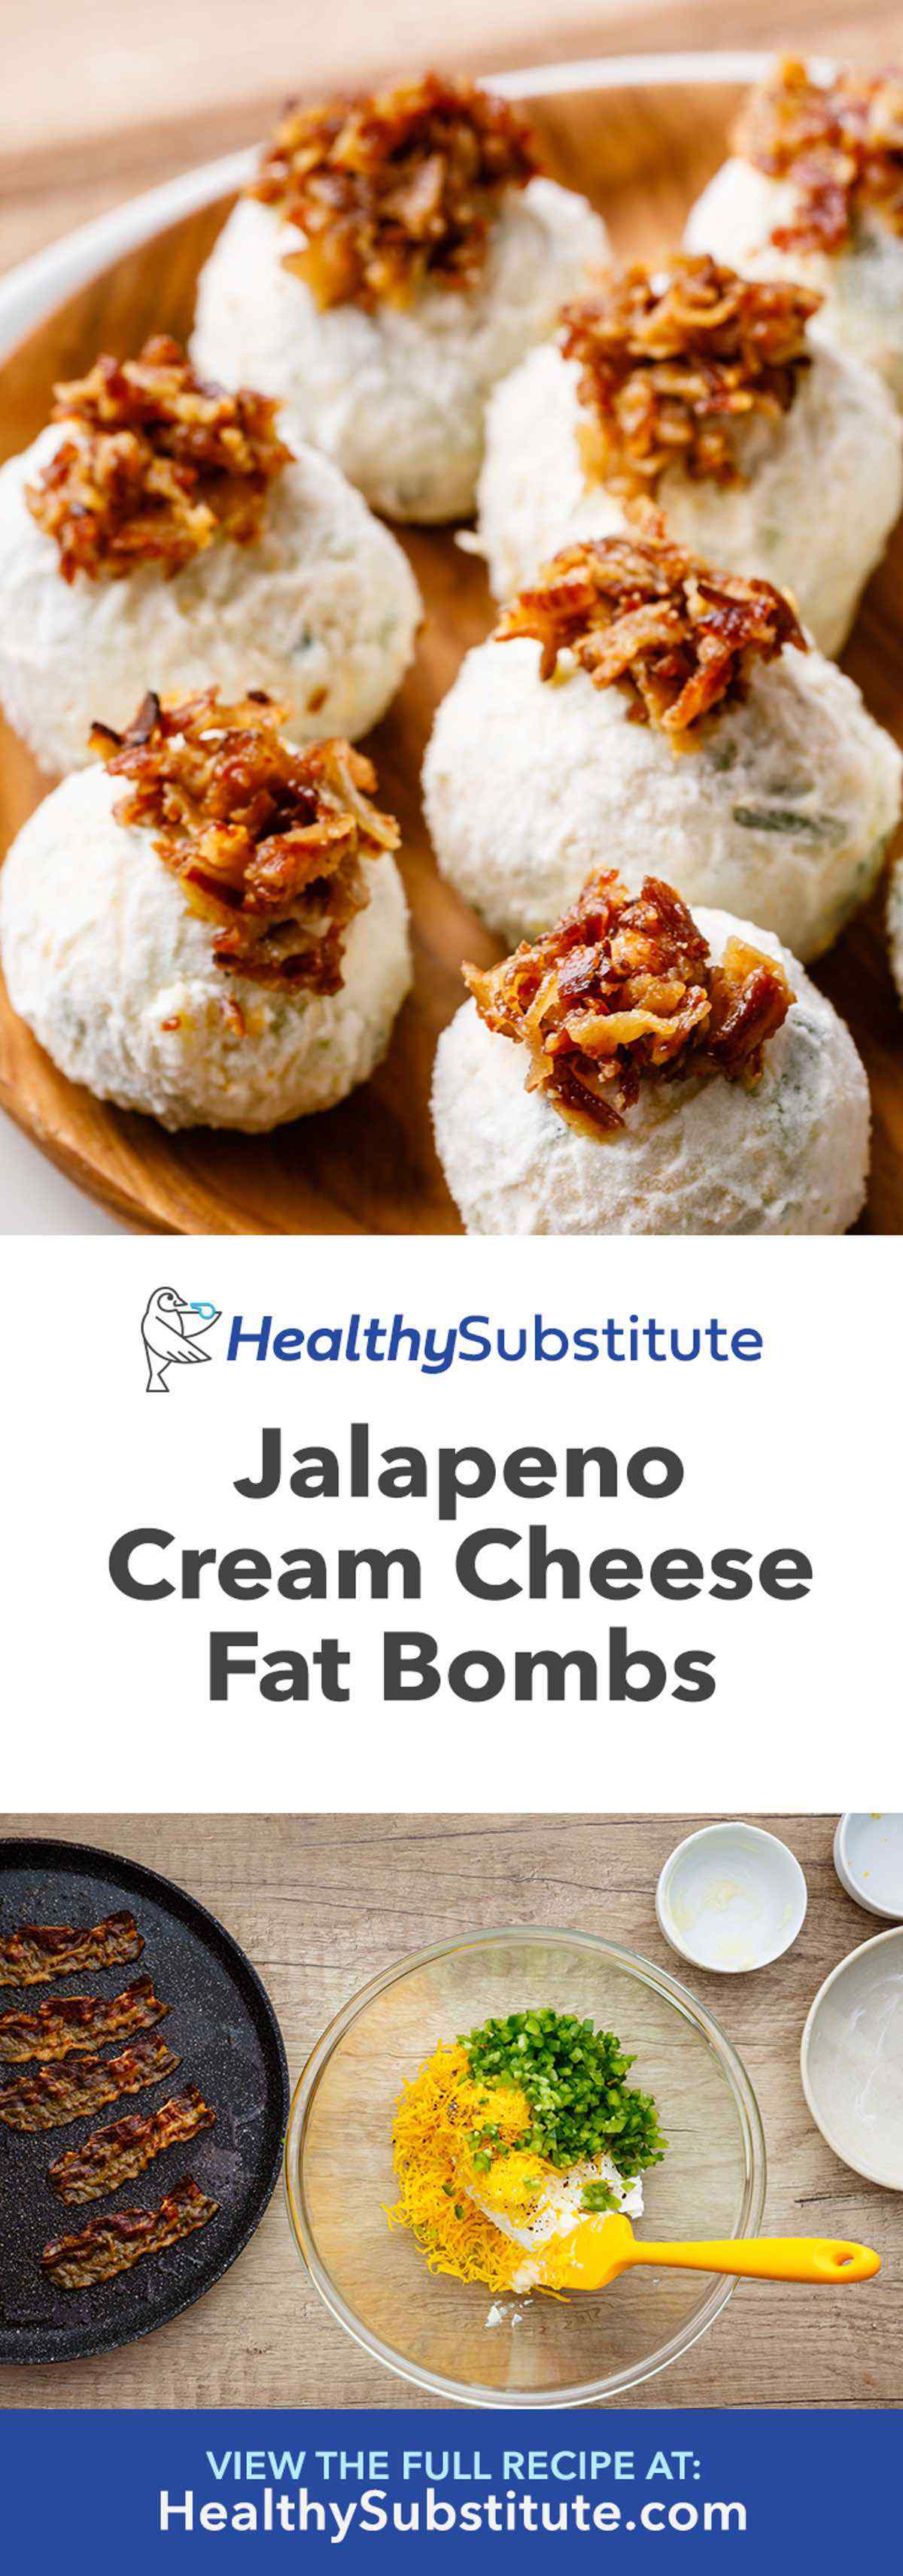 Jalapeno Cream Cheese Fat Bombs